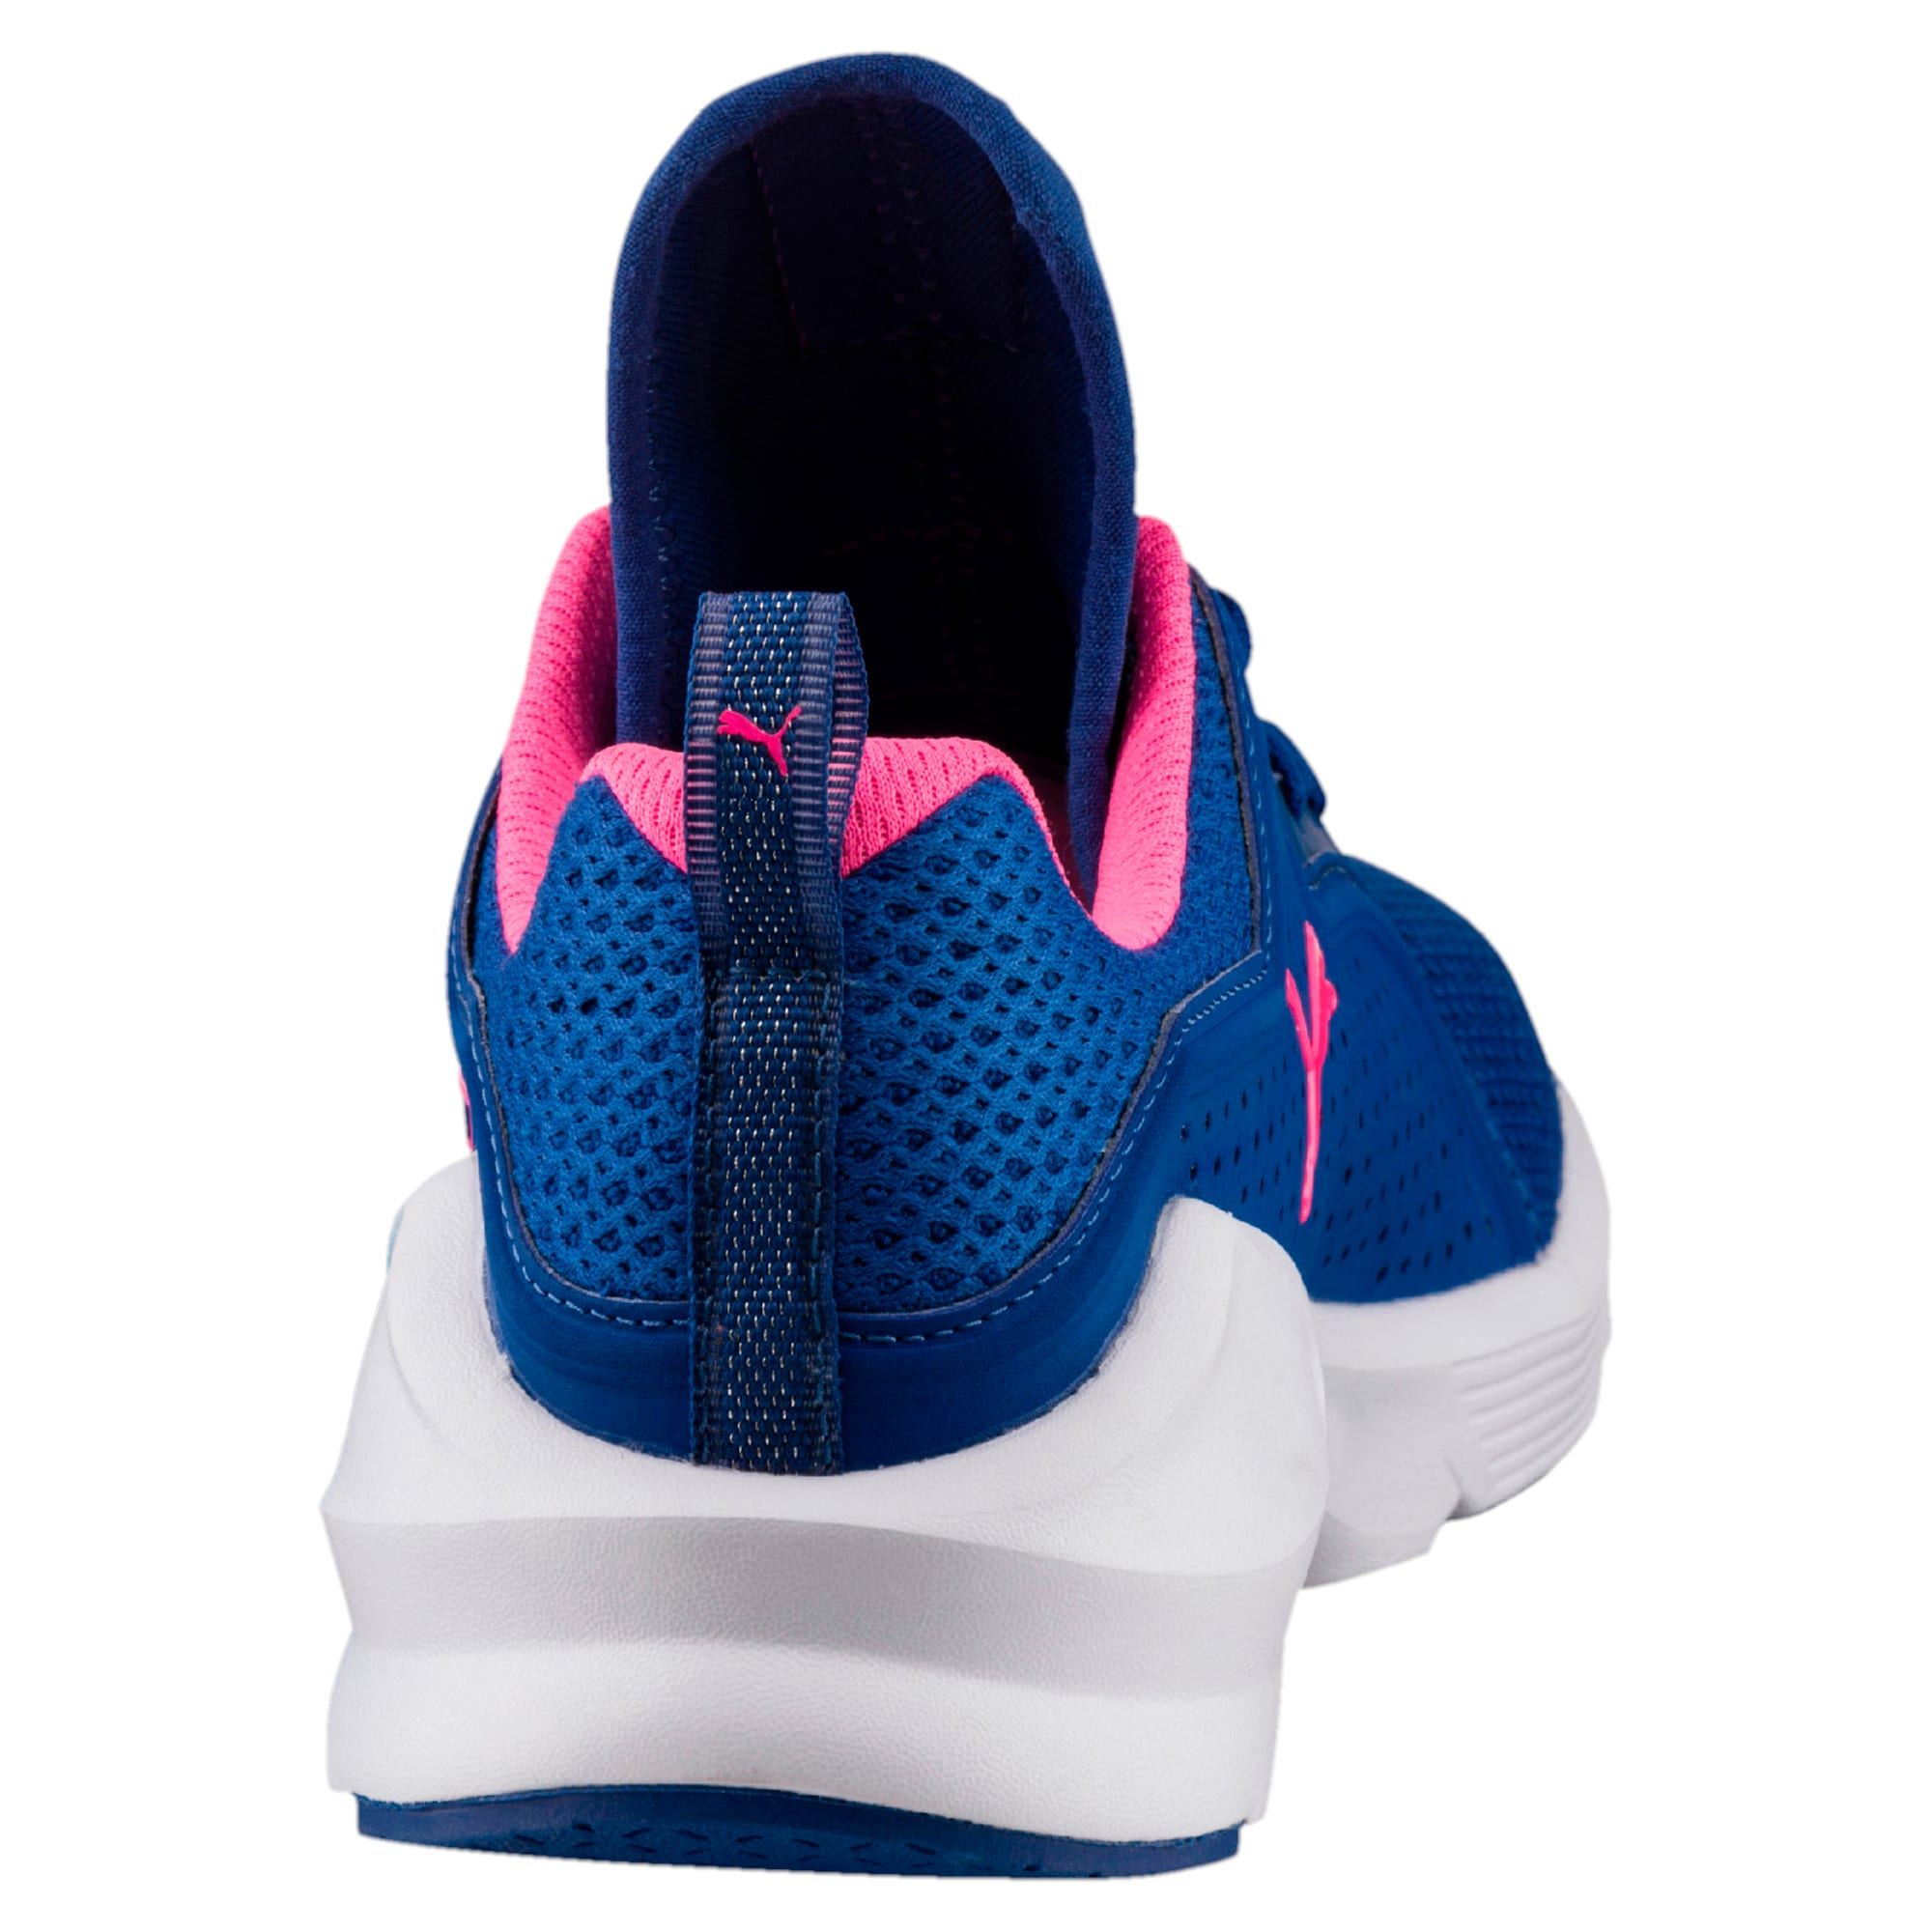 Thumbnail 3 of PUMA Fierce Lace Training Shoes, TRUE BLUE-KNOCKOUT PINK, medium-IND